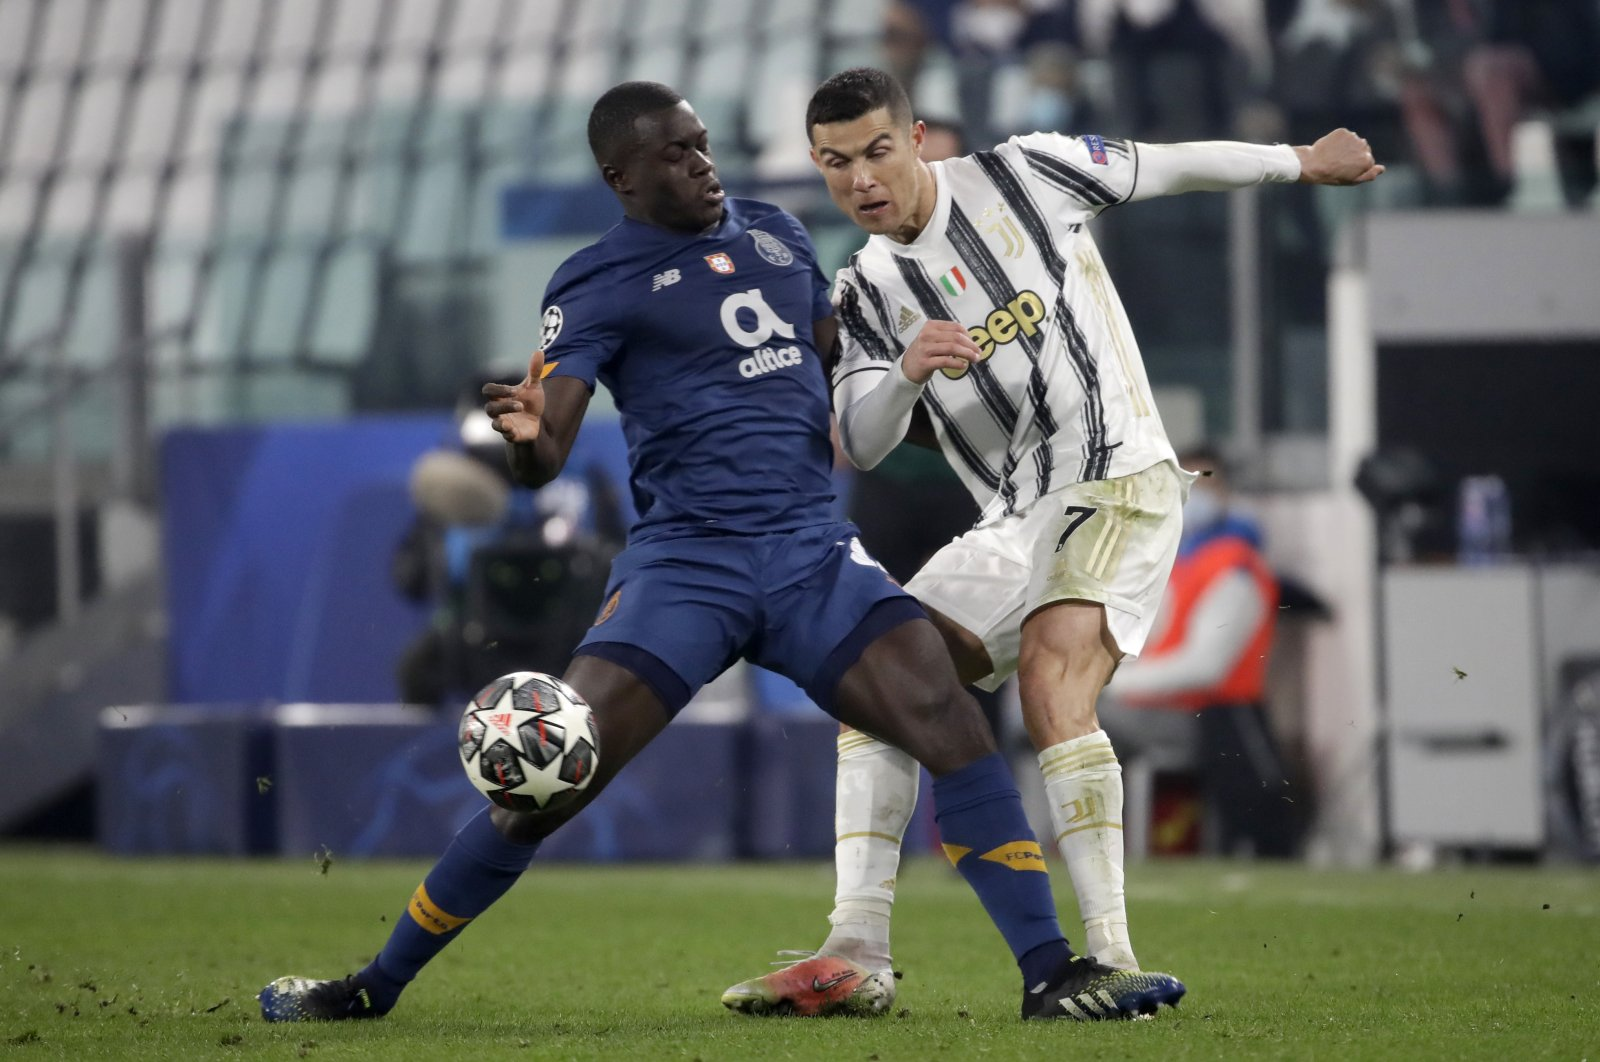 Porto's Malang Sarr (L) vies for the ball with Juventus' Cristiano Ronaldo during the Champions League round of 16, second leg match in Turin, Italy, March 9, 2021. (AP Photo)